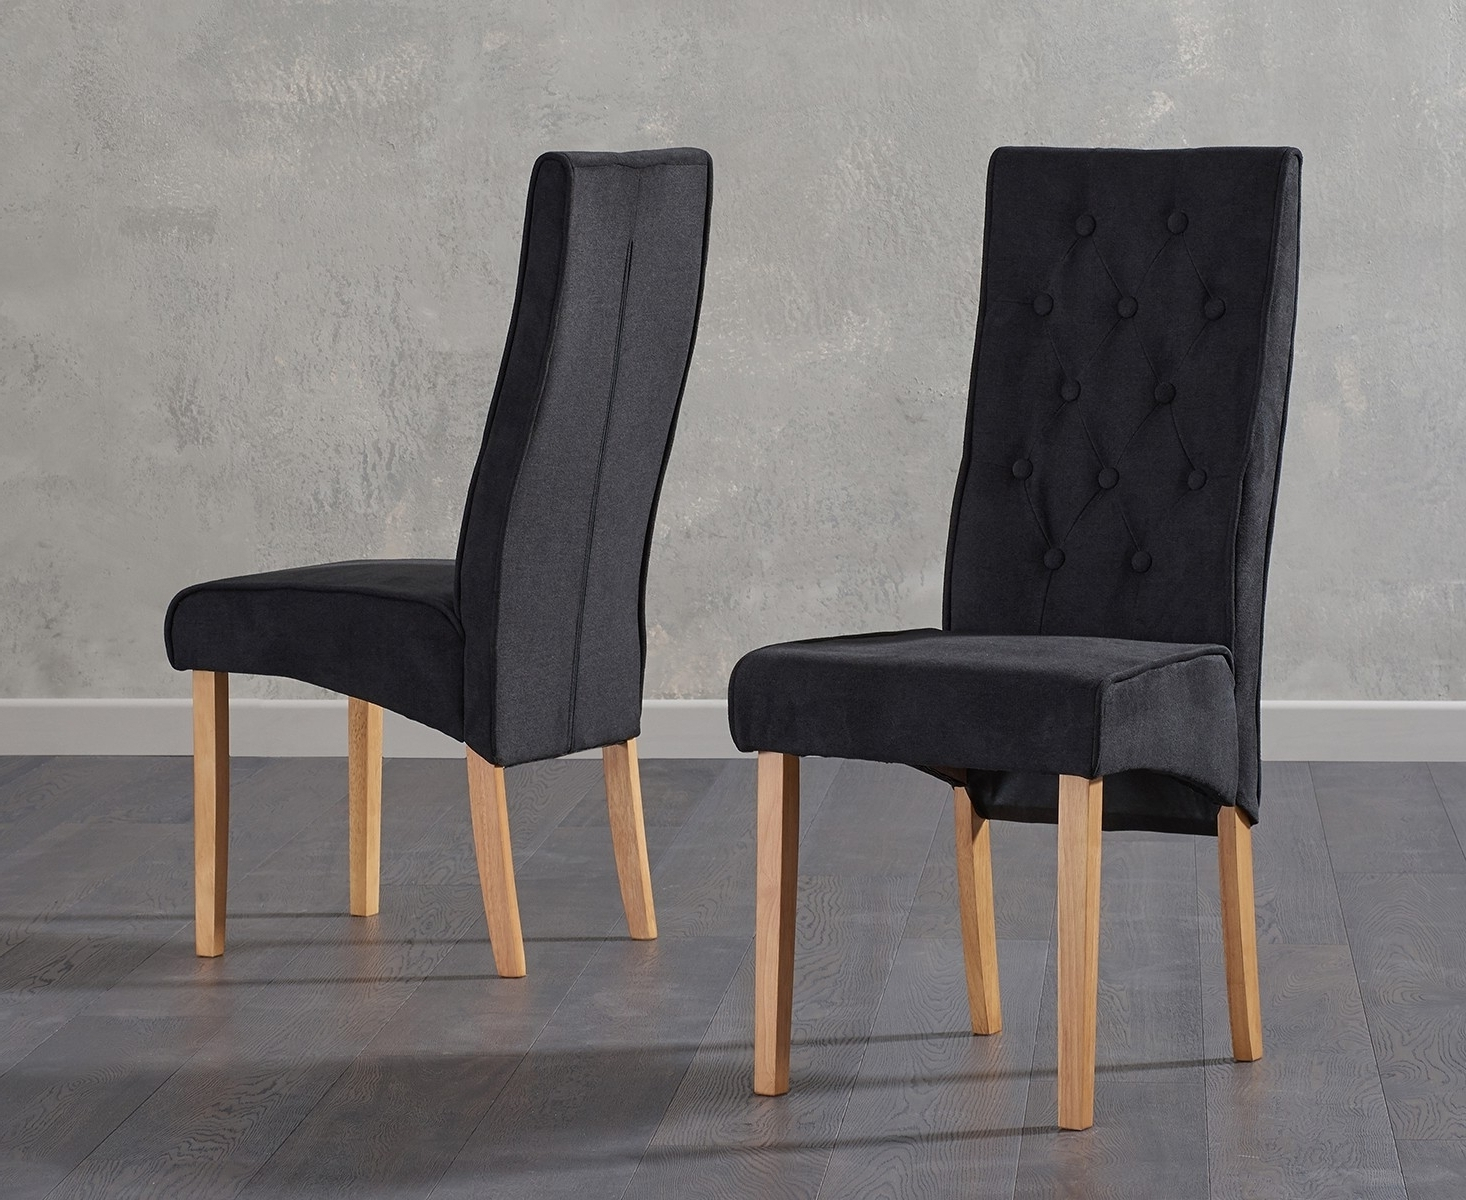 Fabric Dining Chairs Intended For Well Liked Mello Black Fabric Dining Chairs (Pair) – Comes Ready Assembled (View 9 of 25)